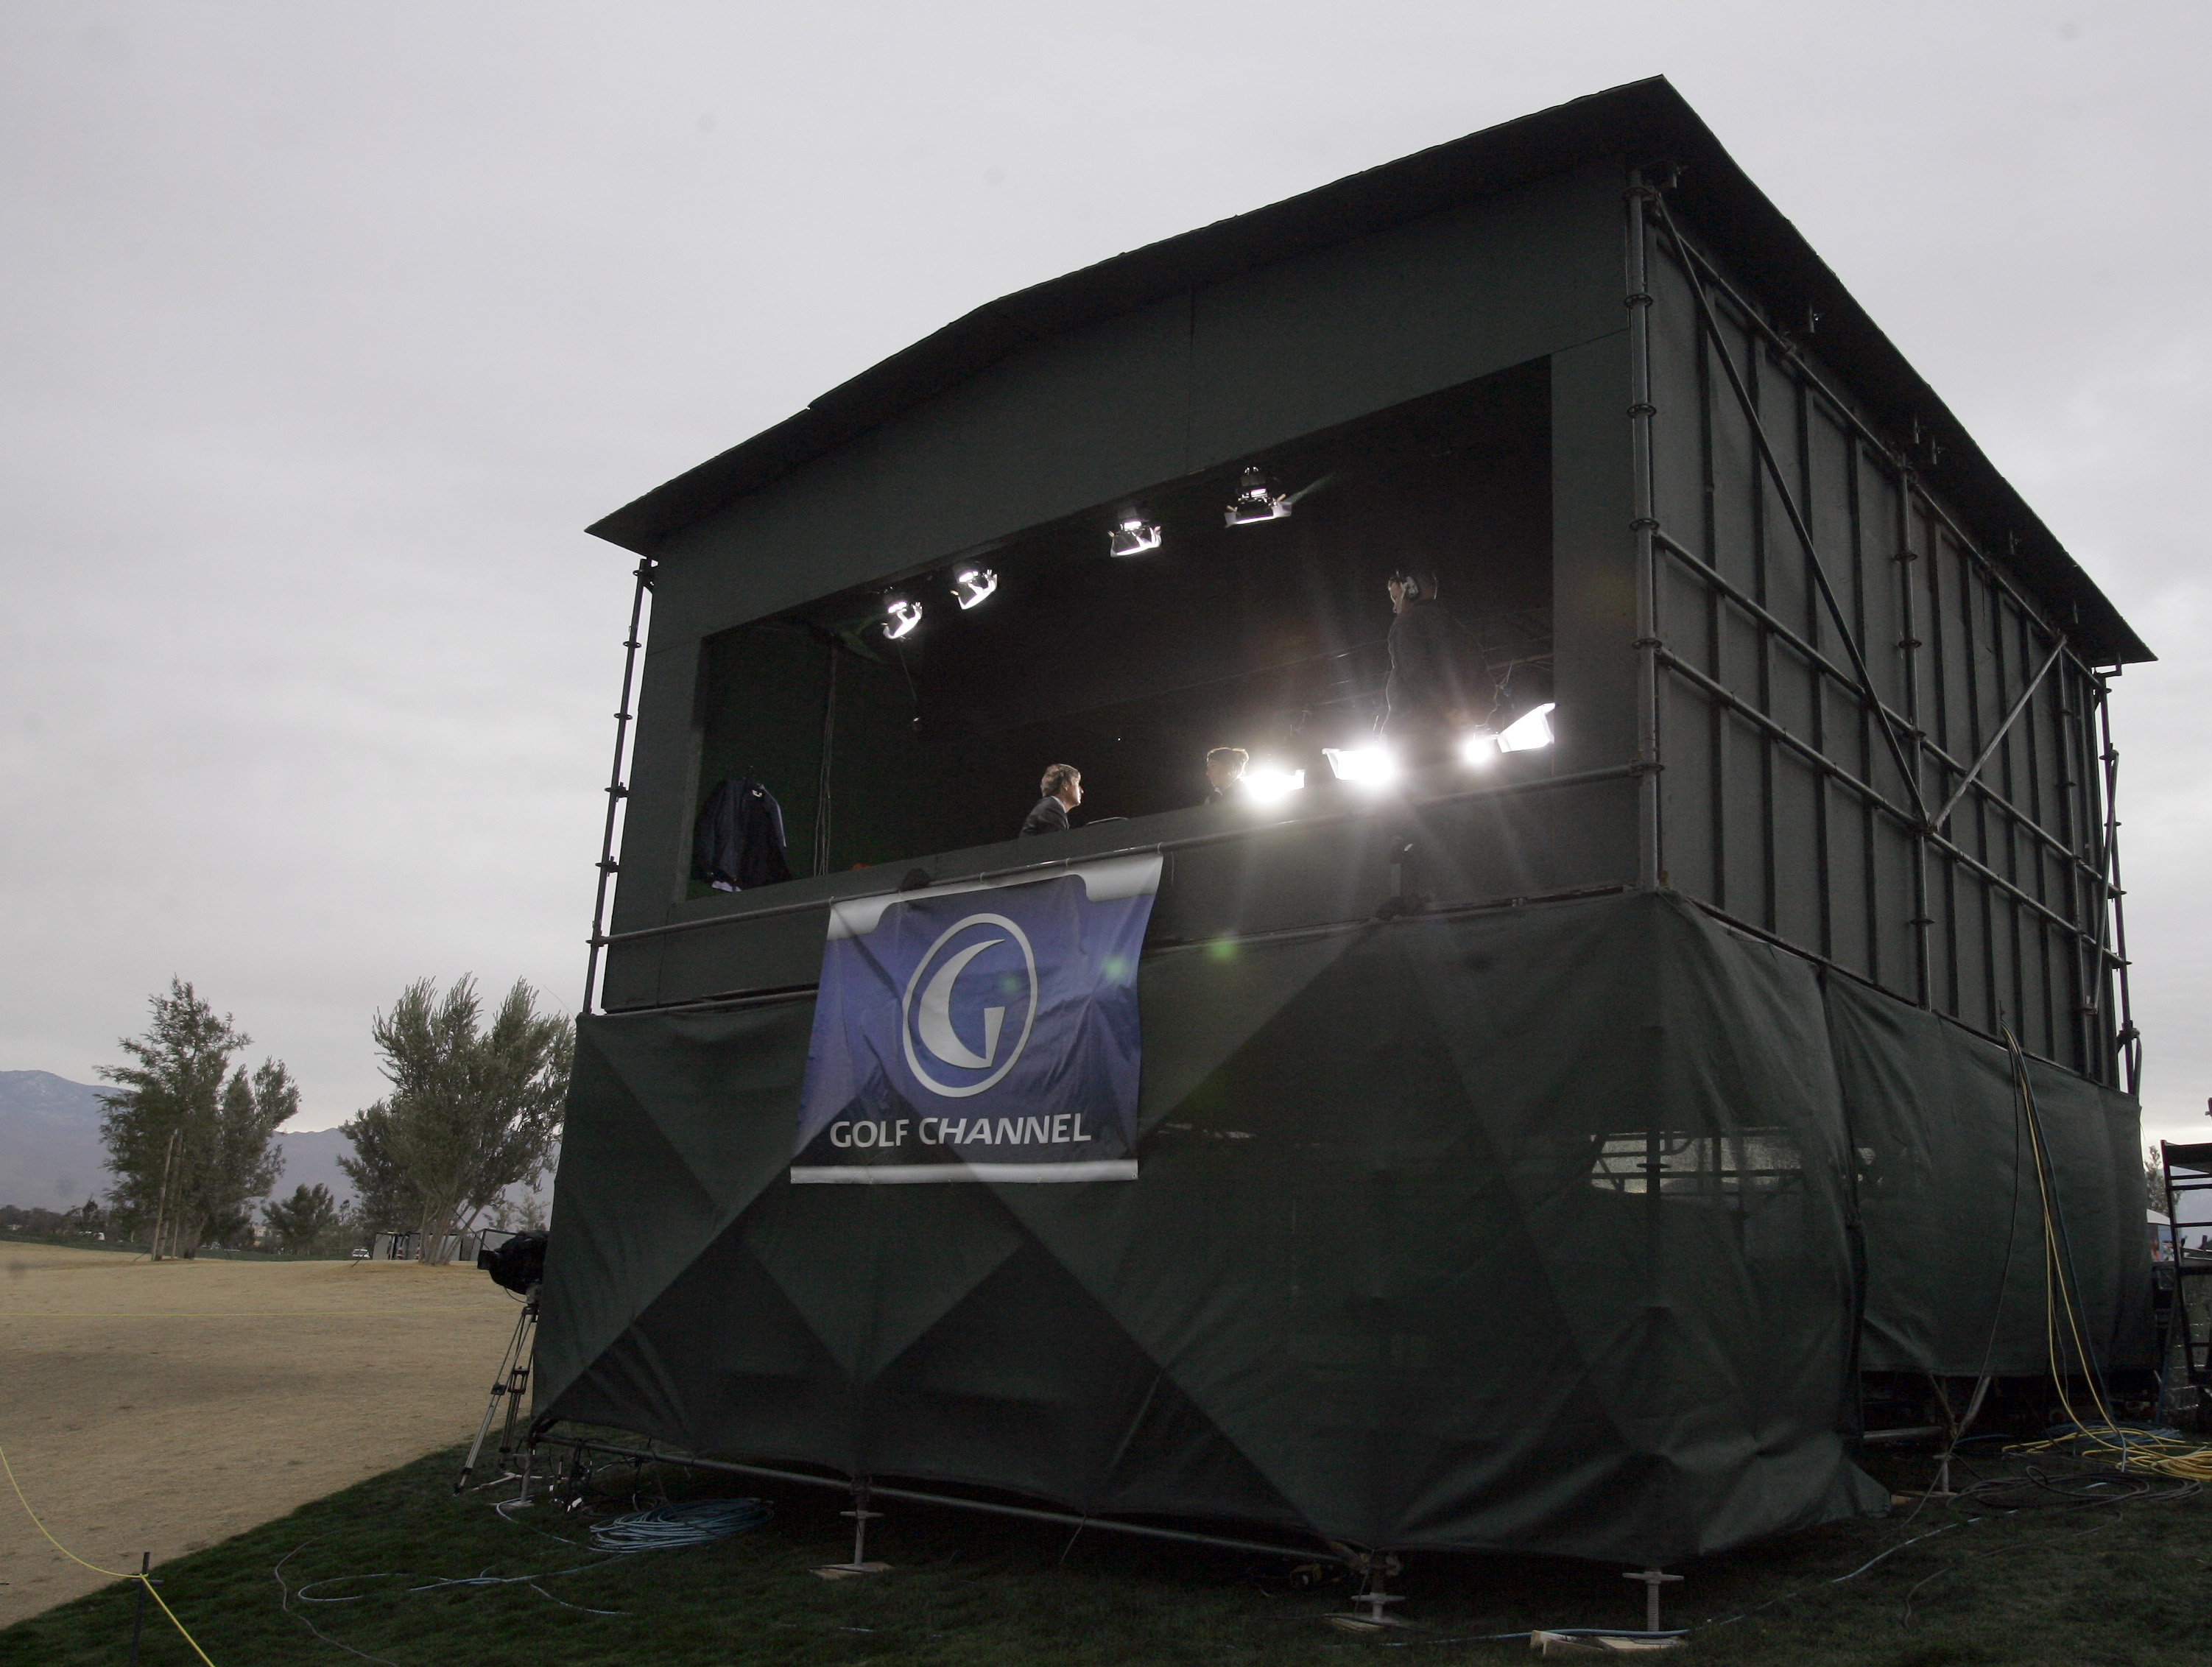 The Golf Channel broadcast booth sits along the 13th fairway at the Classic Club during the third round of the Bob Hope Chrysler Classic in Thousand Palms, Calif., Friday, Jan. 19, 2007. Comcast Corp. is making a big bet on golf, hoping to transform its l